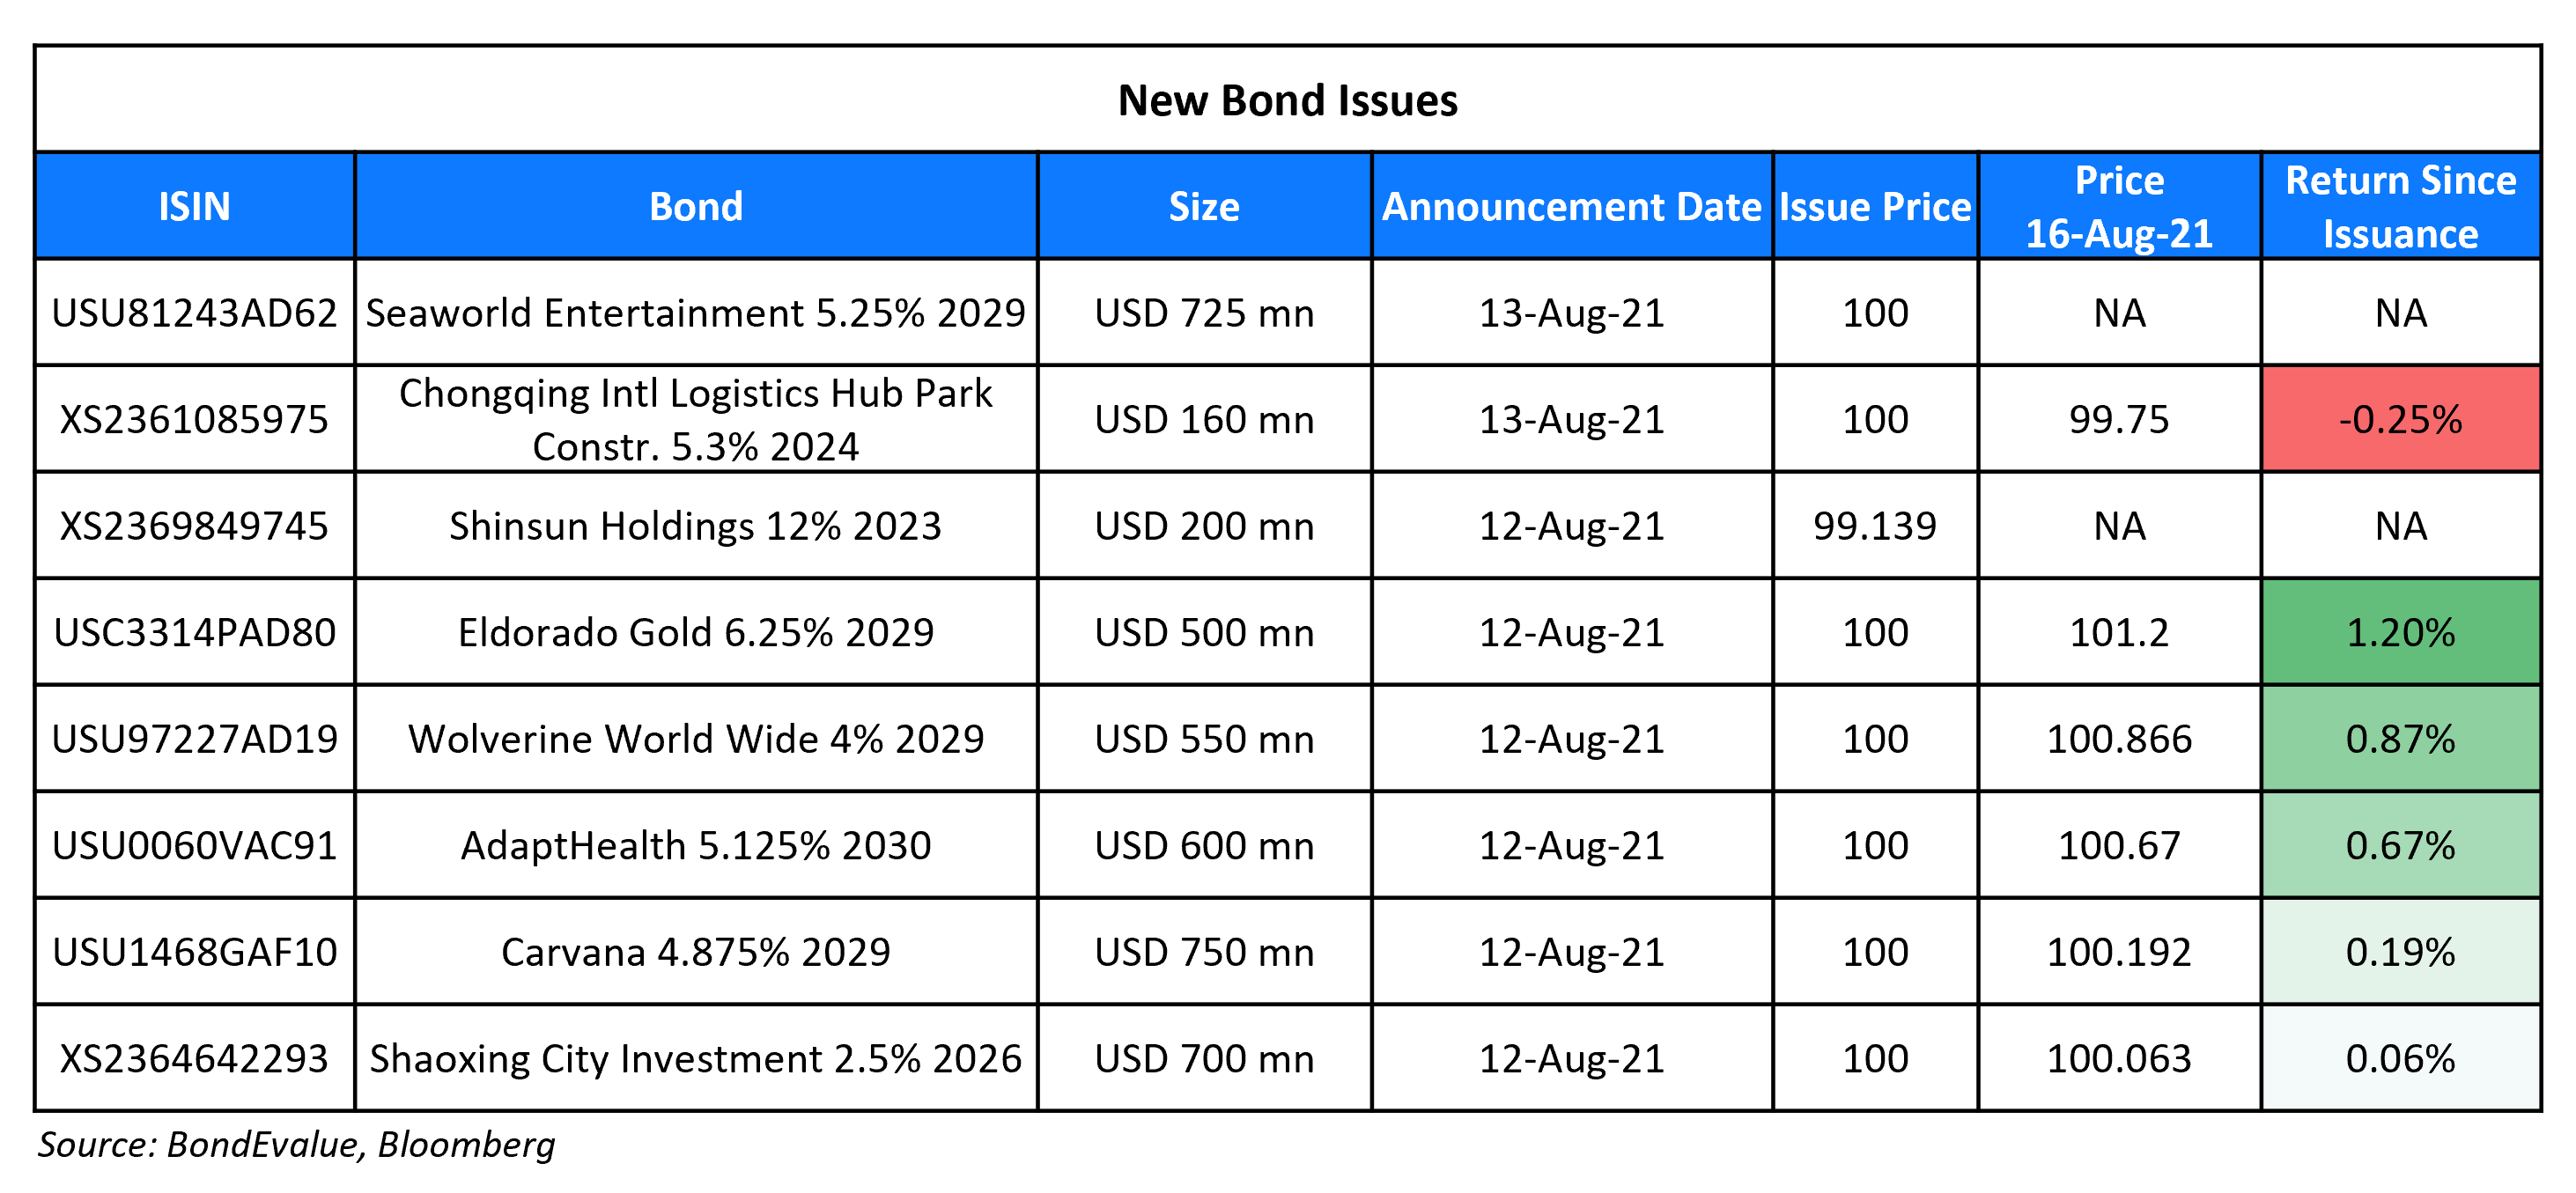 New Bond Issues 16 Aug